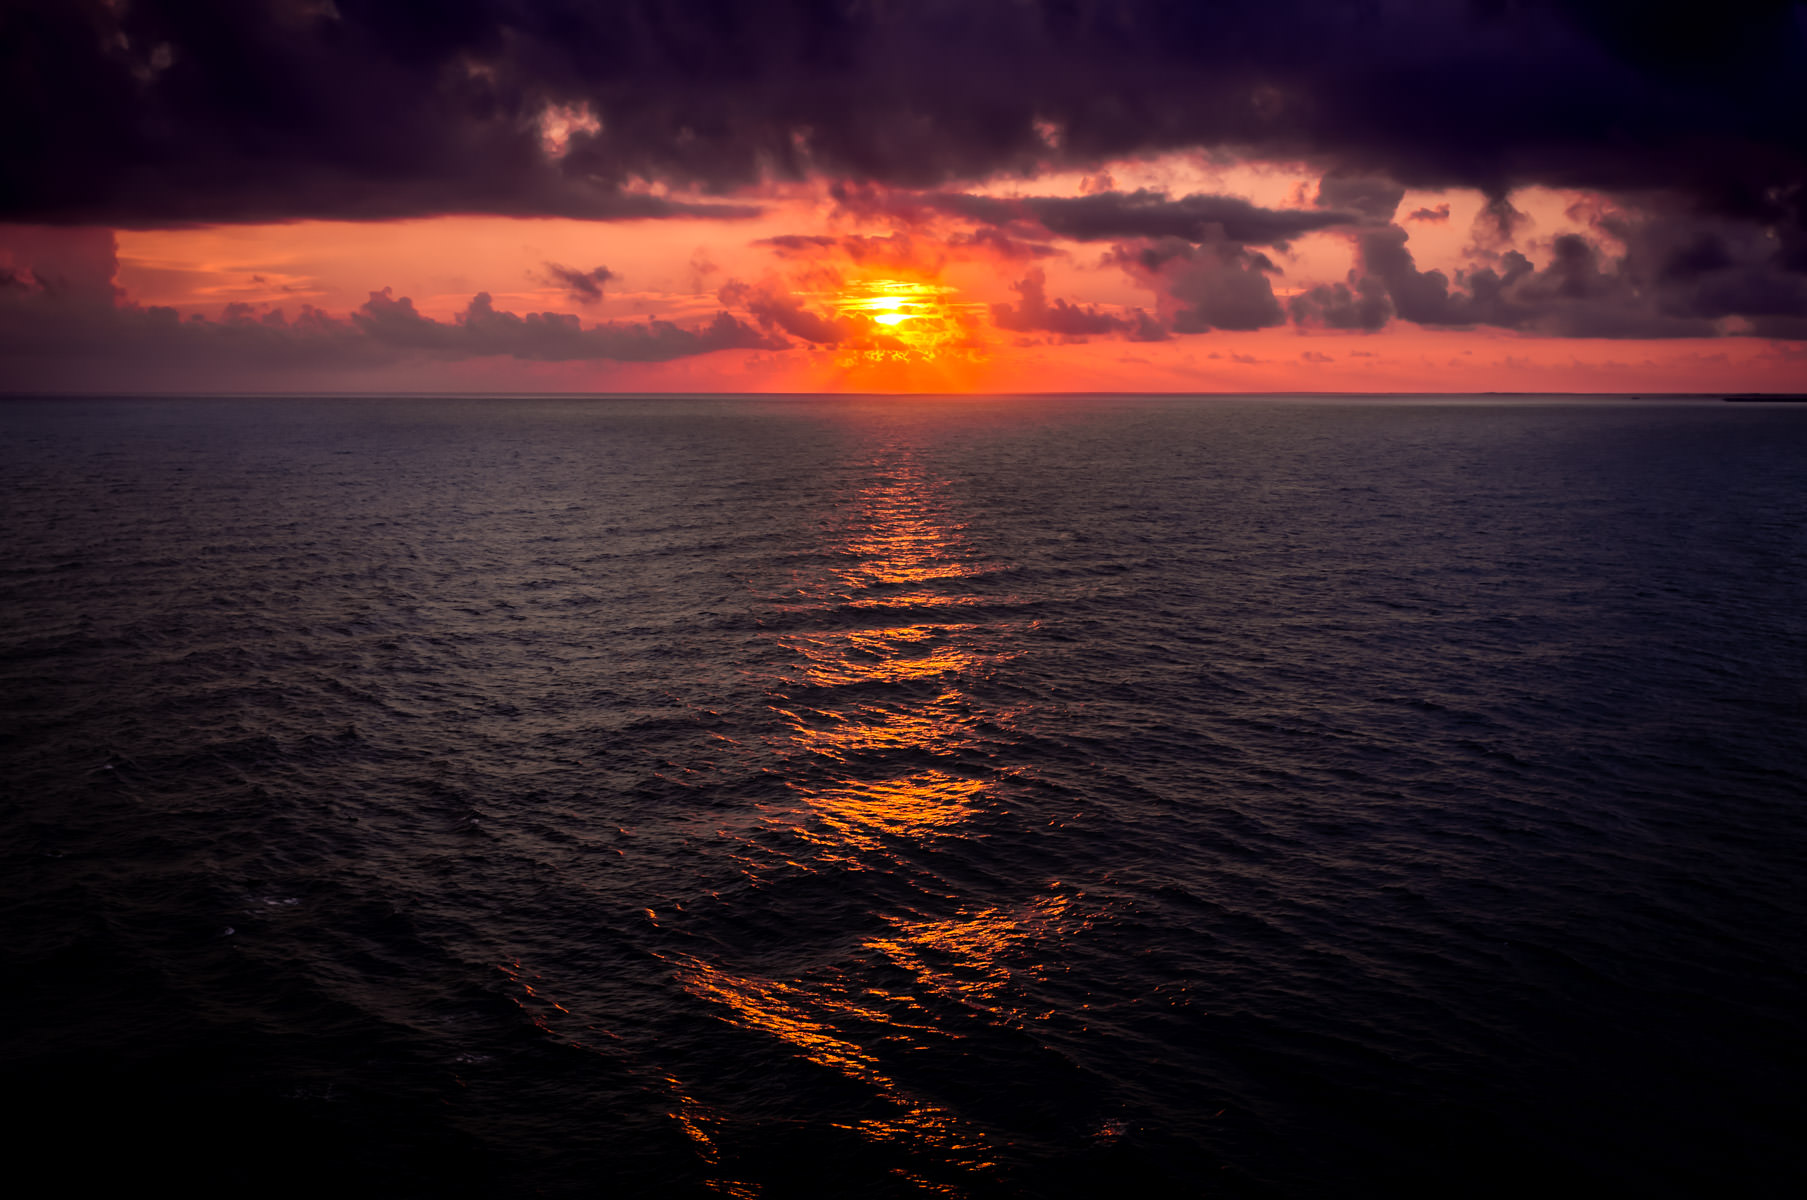 The sun rises over the Cozumel Channel—the narrows separating Isla Cozumel from the Mexican Mainland.